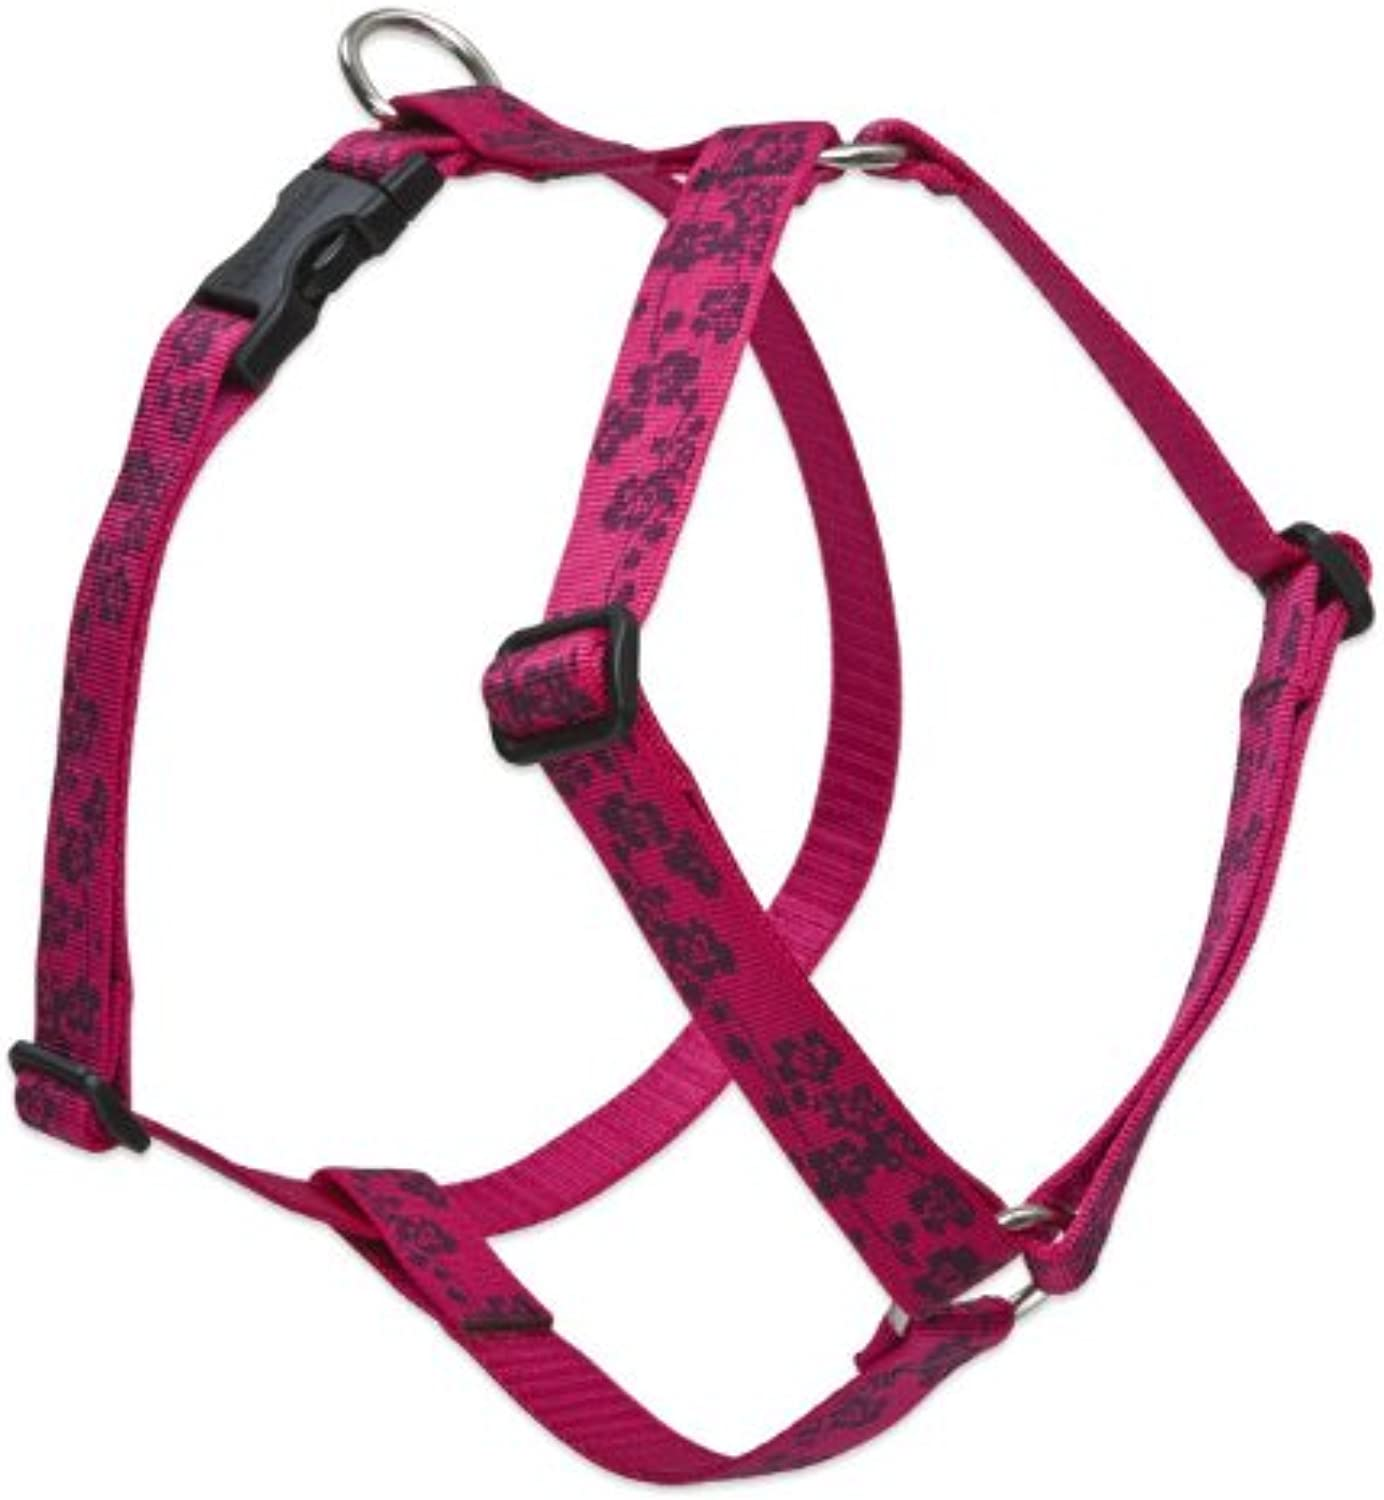 Lupine 1Inch Plum Blossom Roman Dog Harness, 24Inch to 38Inch Girth